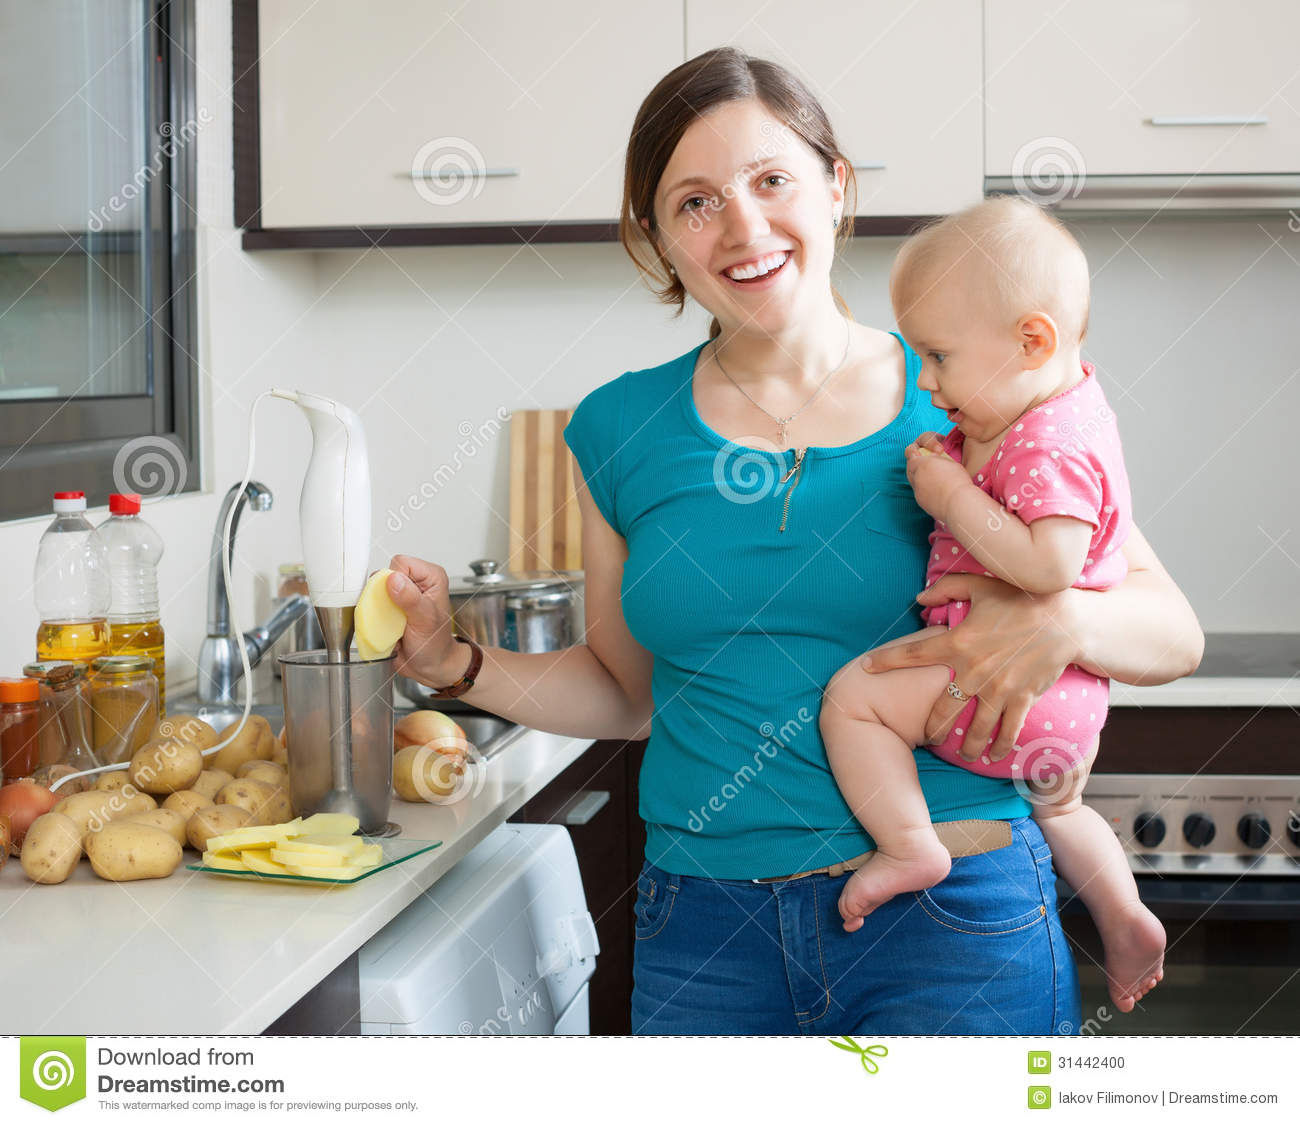 Women Kitchen: Happy Woman With Child Cooking Mashed Potatoes Stock Photo